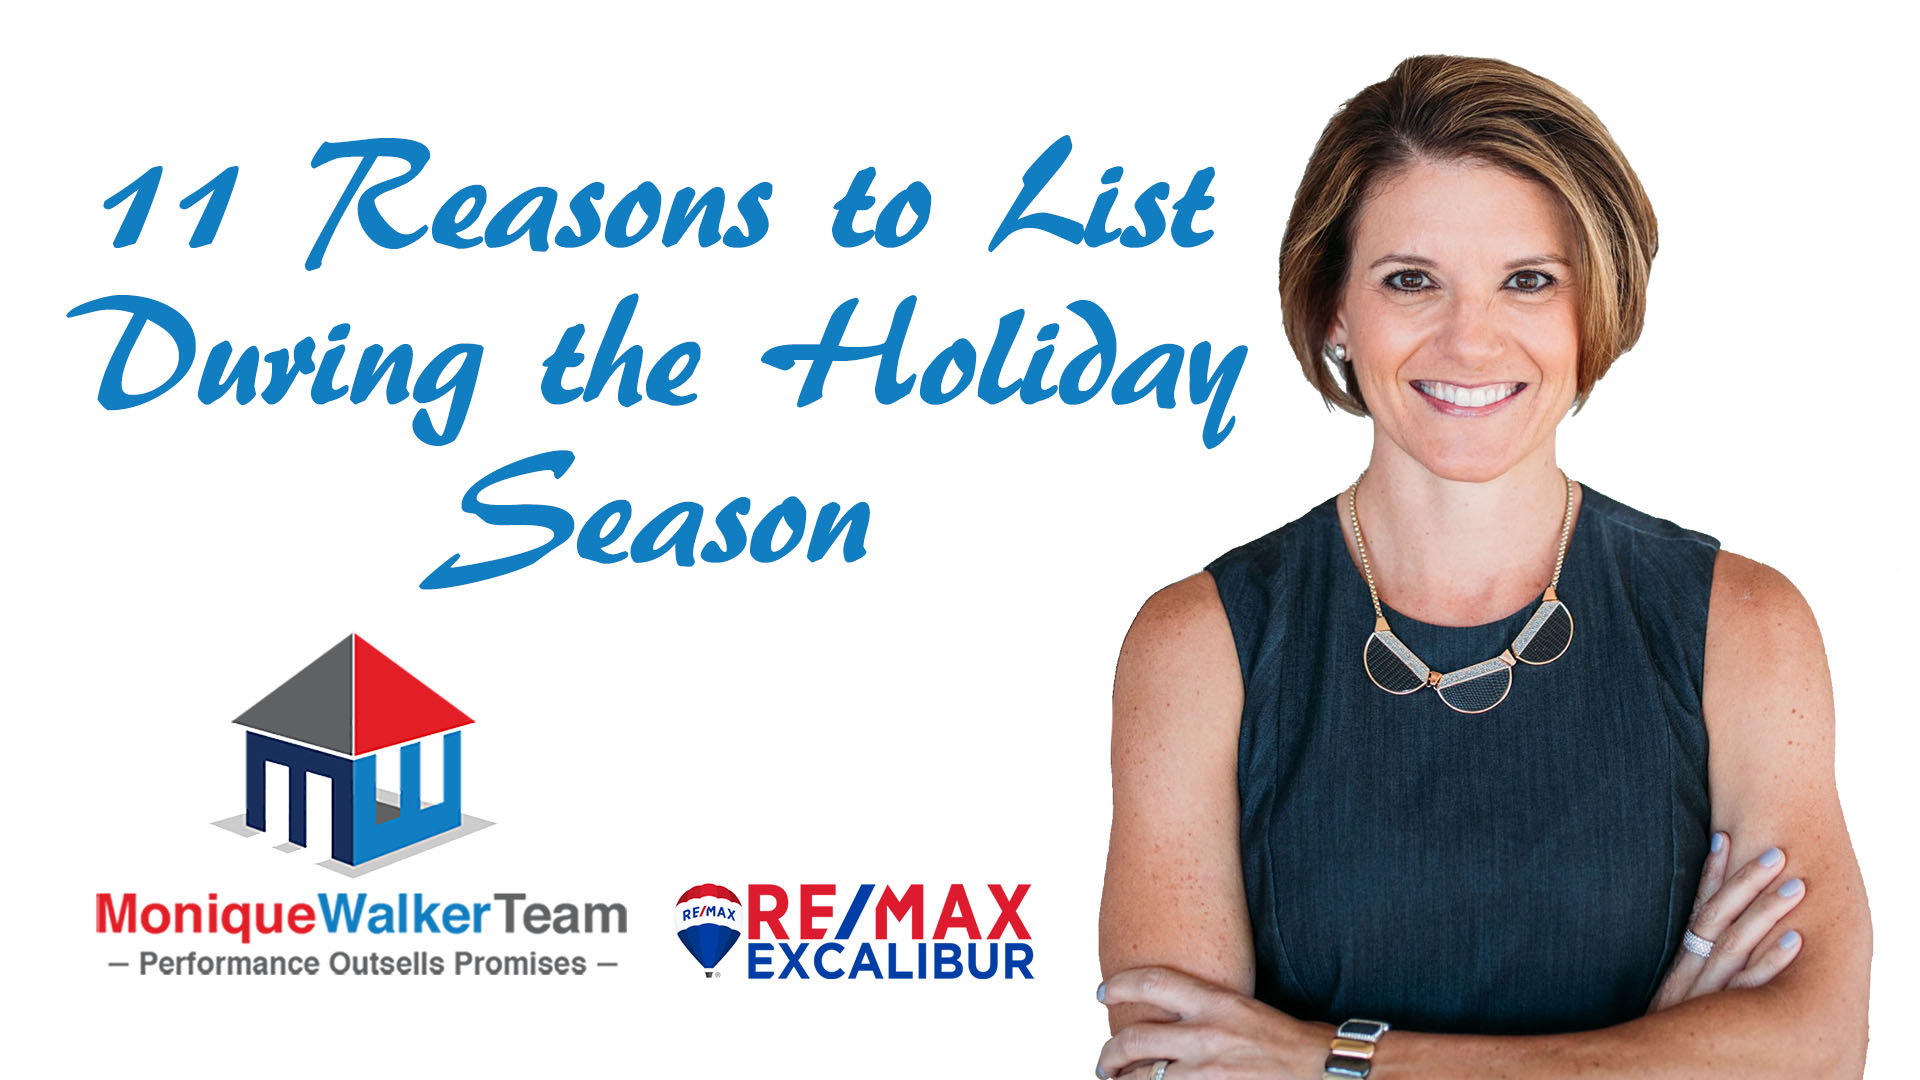 11 Reasons to List During the Holiday Season